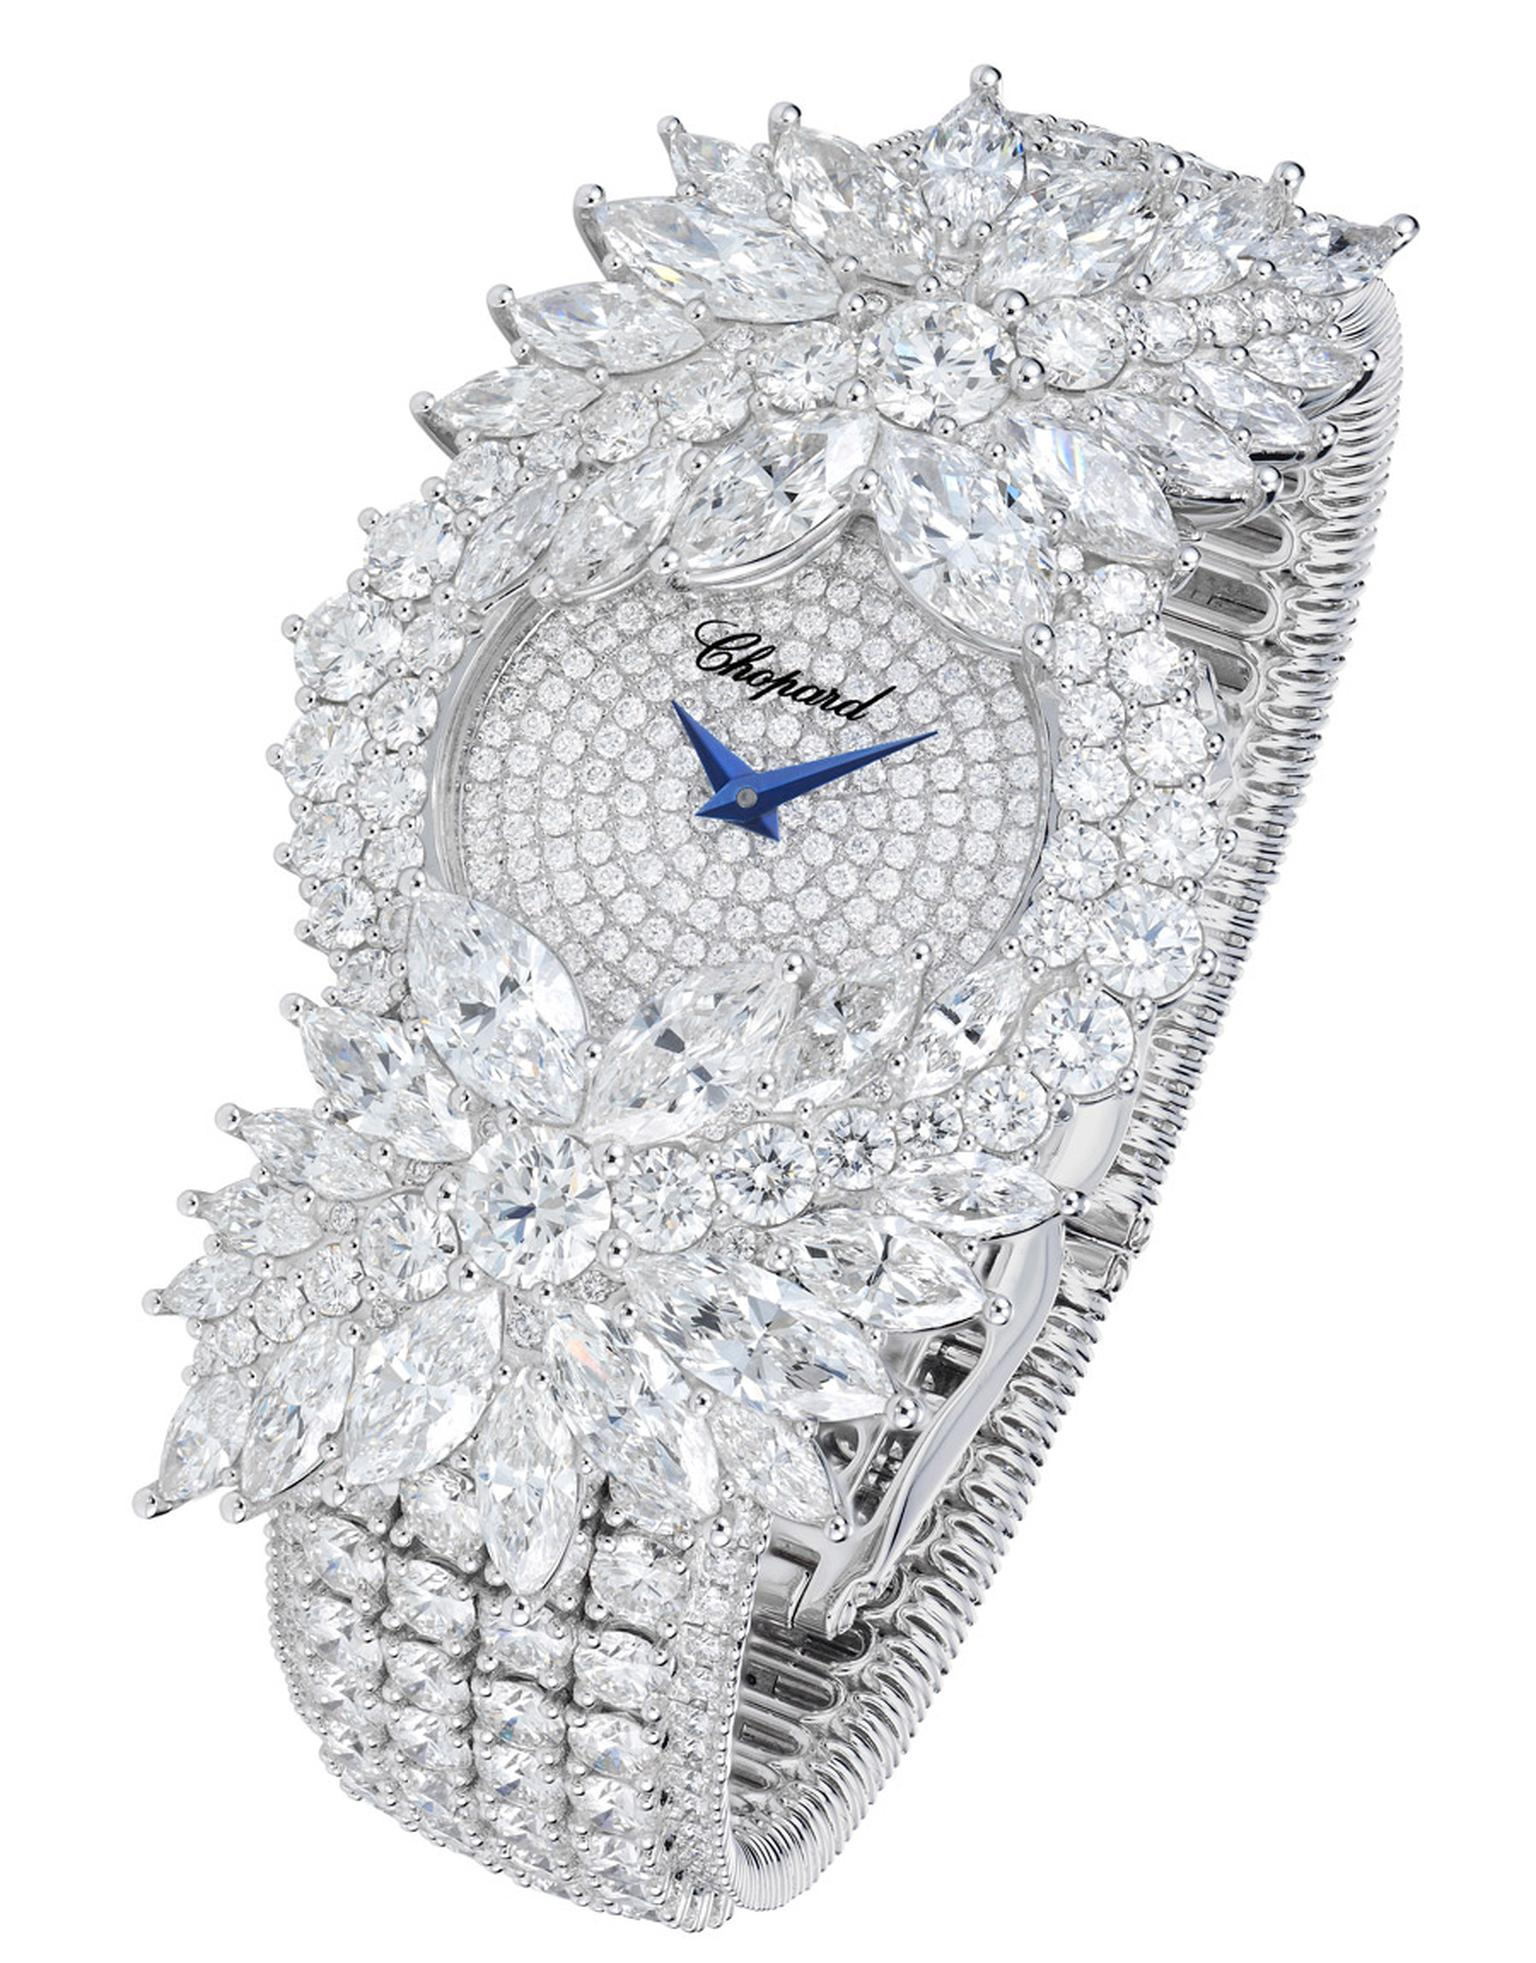 Choaprd-Cannes-Diamond-Haute-Joaillerie-Watch.jpg